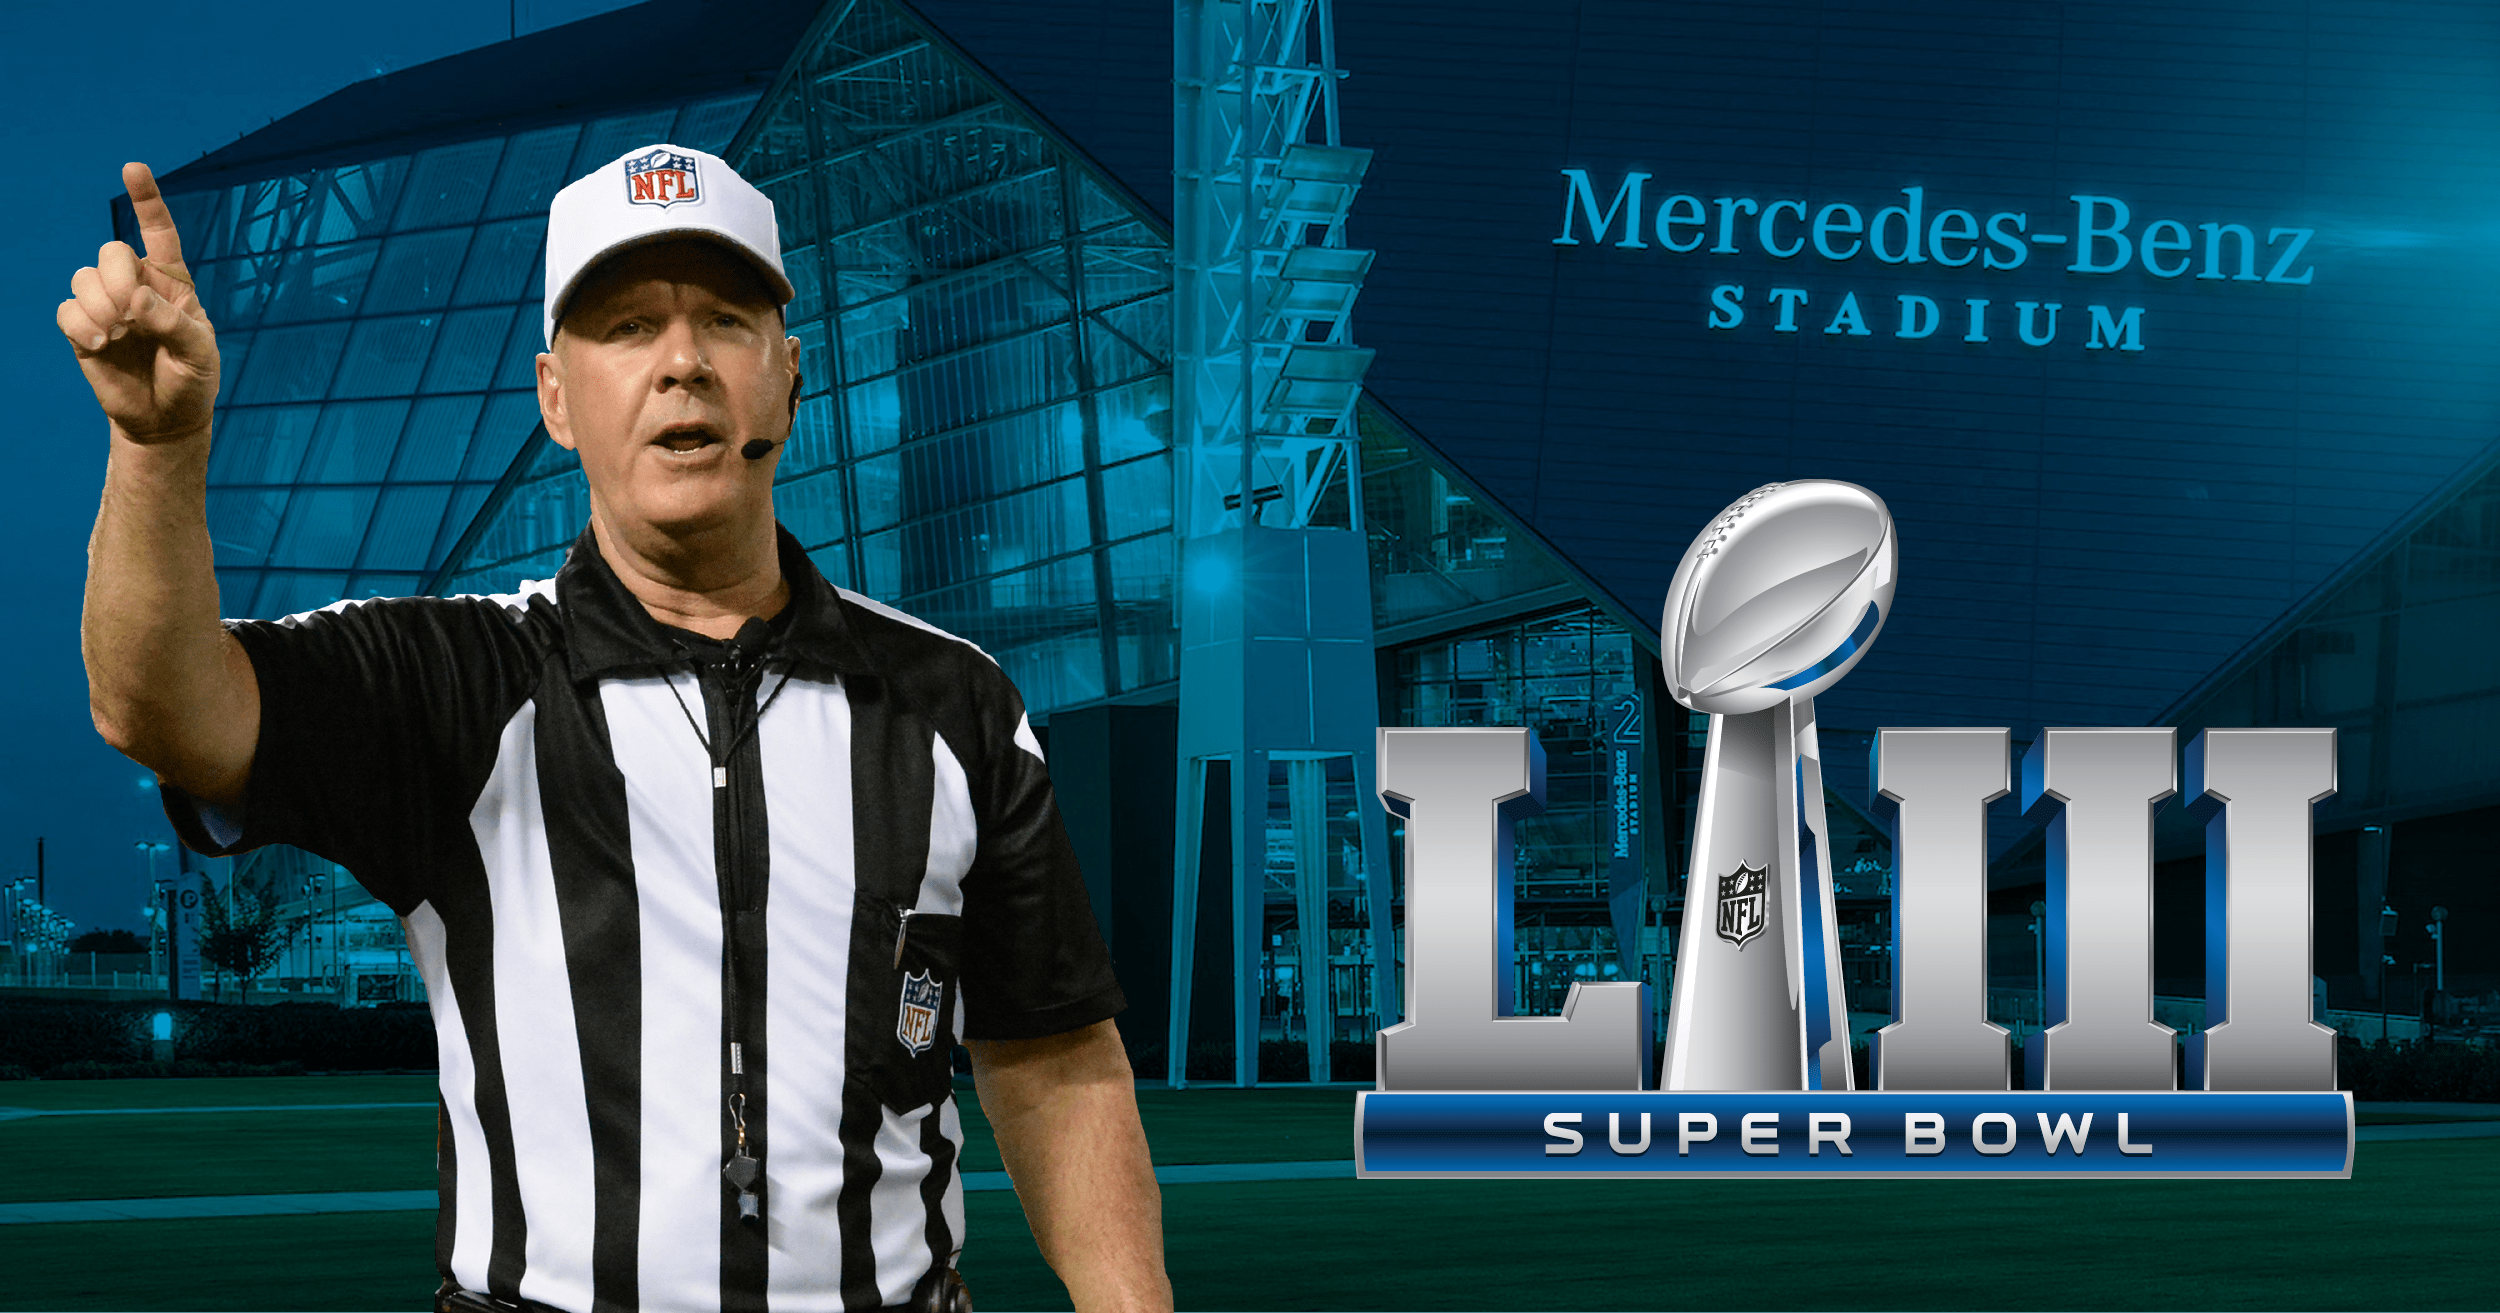 John Parry is the referee for Super Bowl LIII